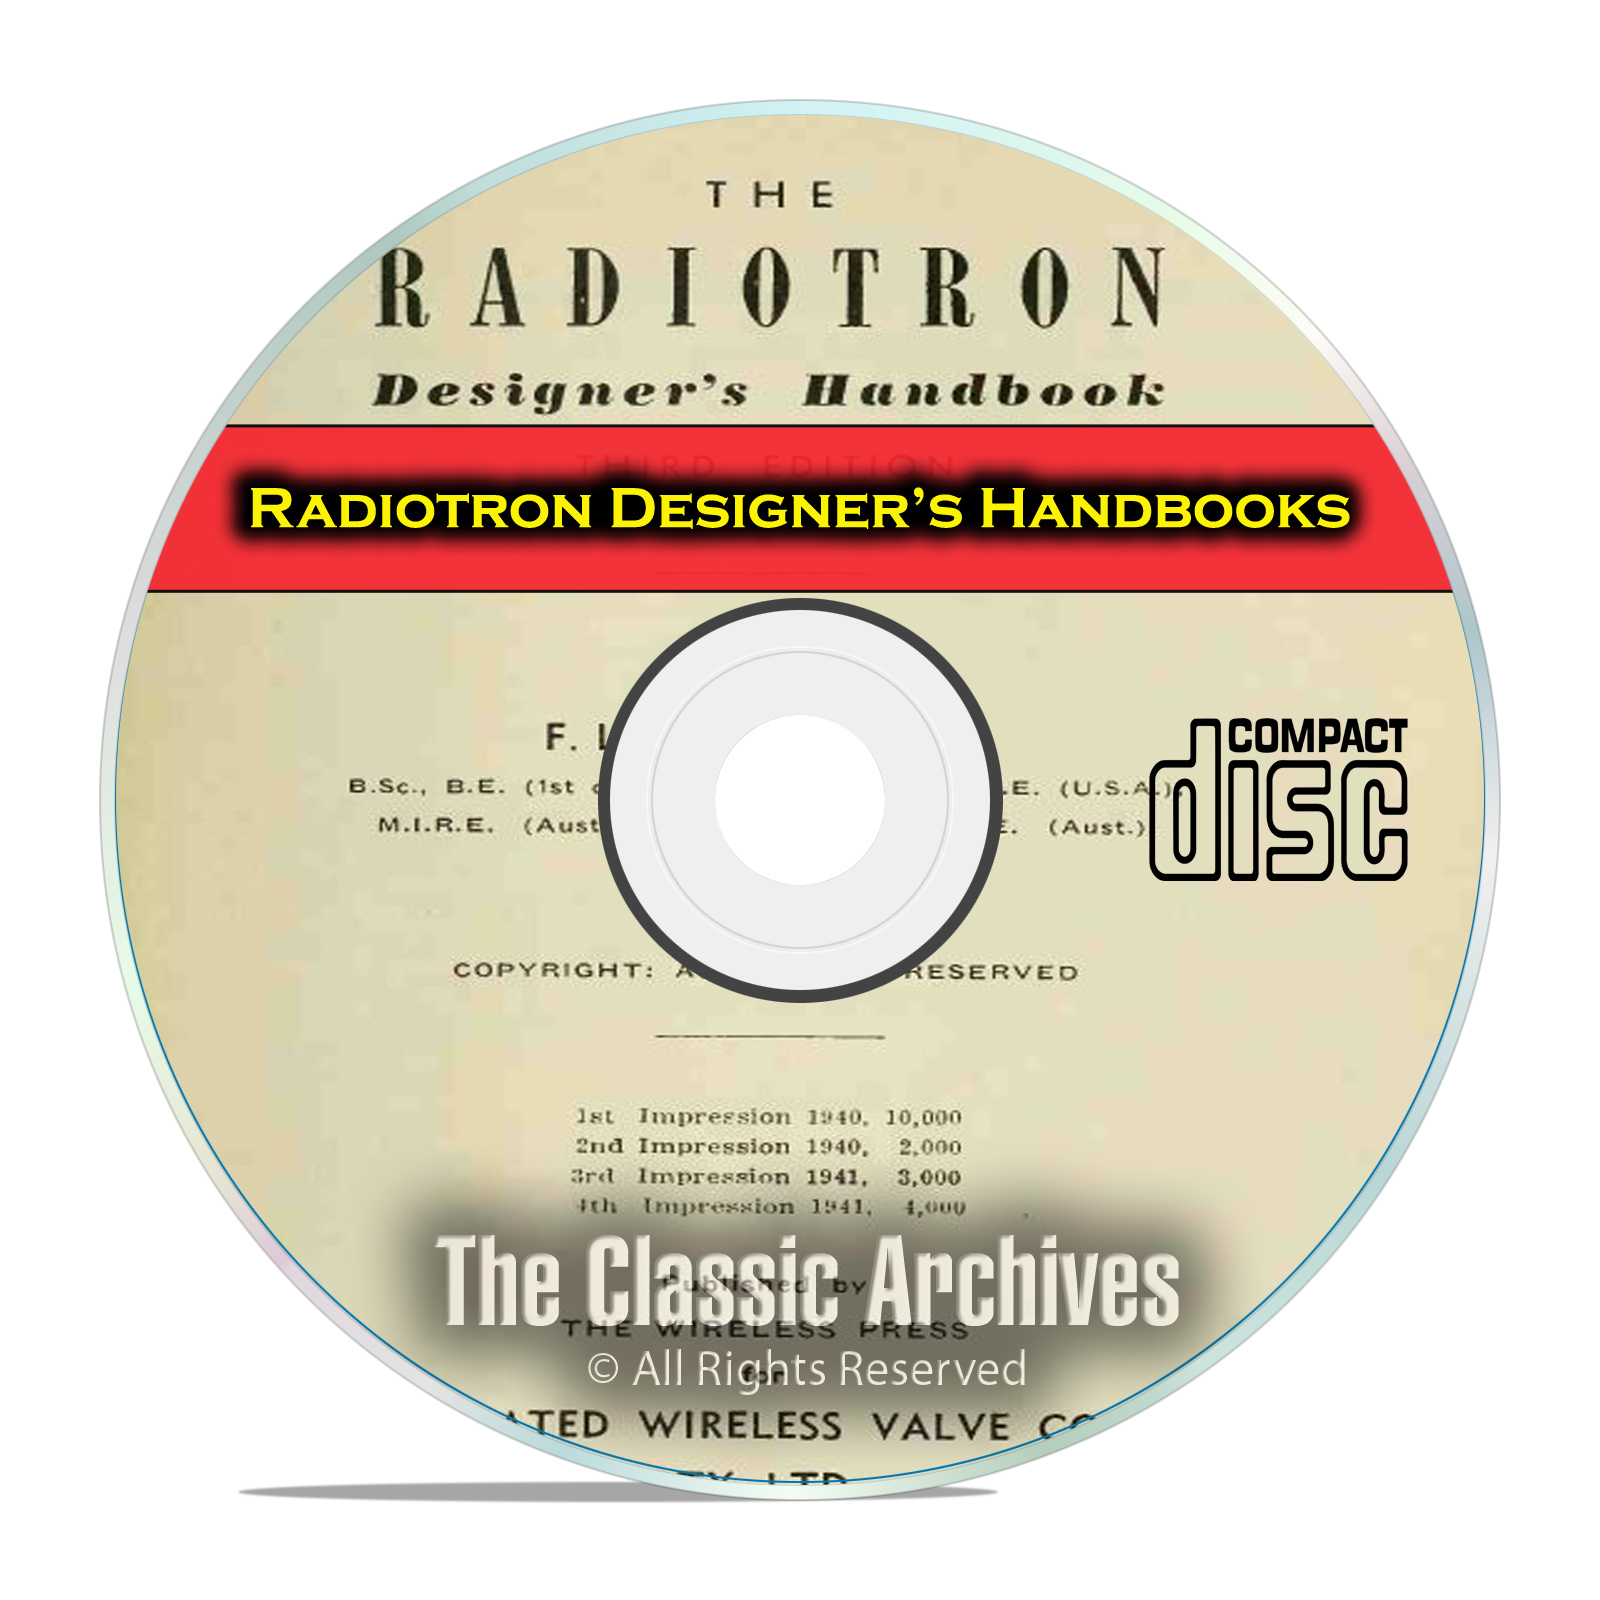 RCA Radiotron Designer's Handbooks, 3rd, 4th Edition, Vintage Tube Radio CD